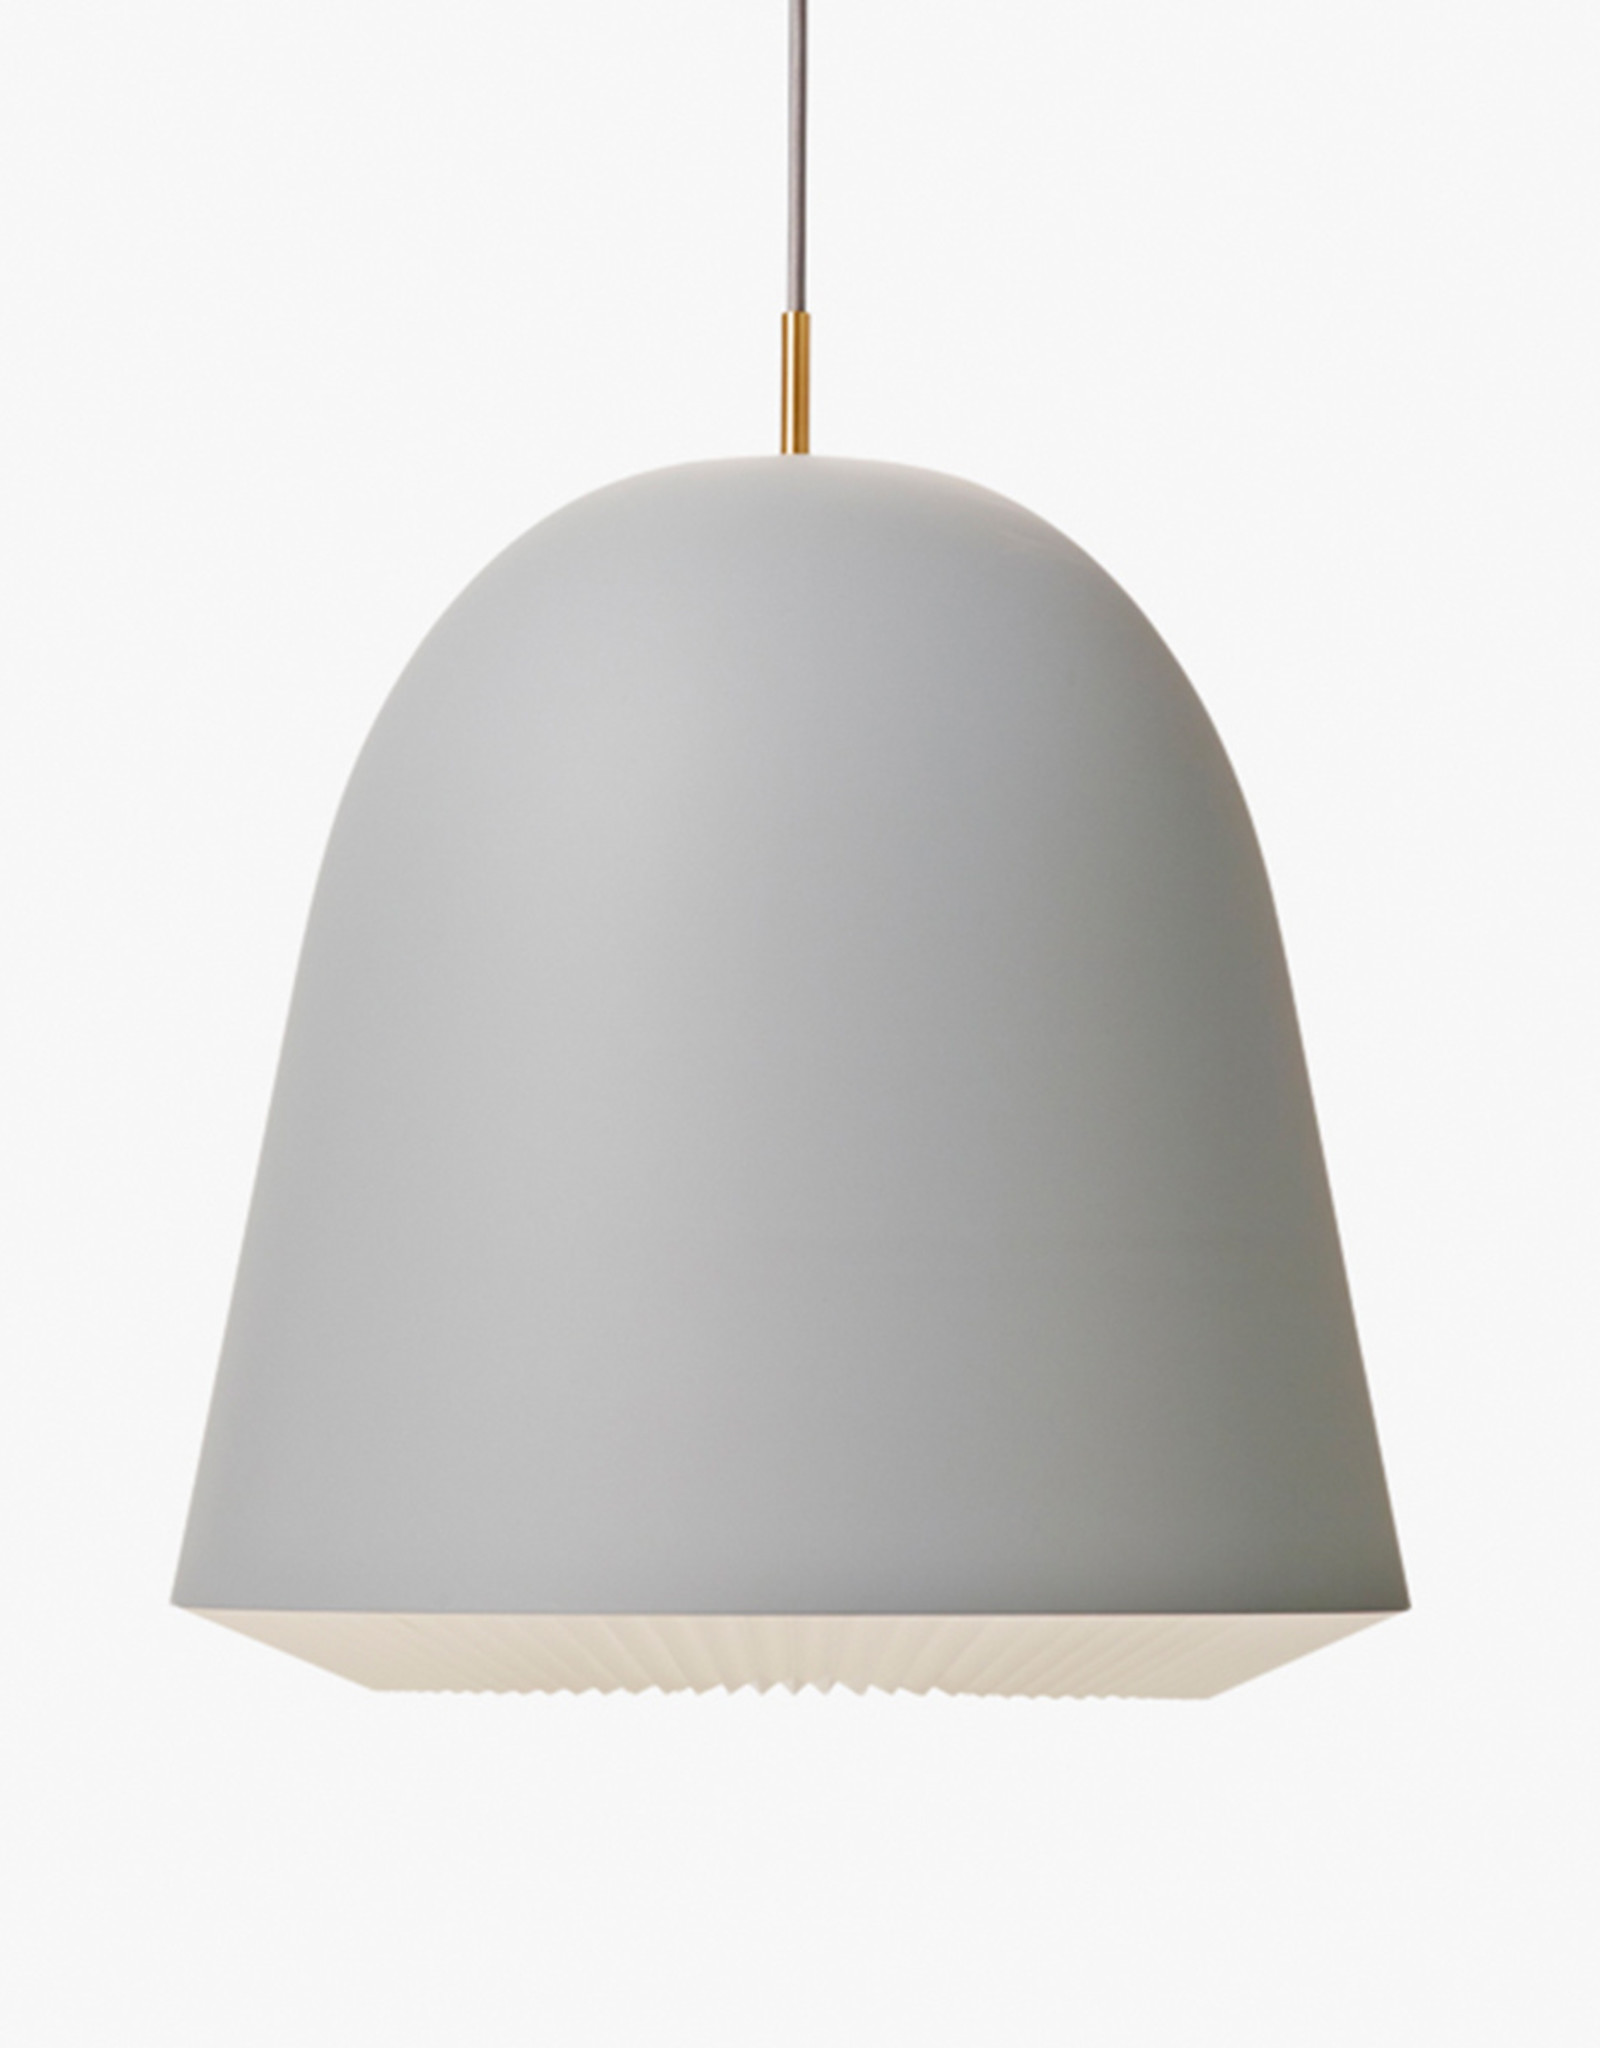 Caché pendant light by Aurelién Barbry | Grey | L | W40cm x H42cm | 1x E27 1200 LM max. 20W LED bulb required